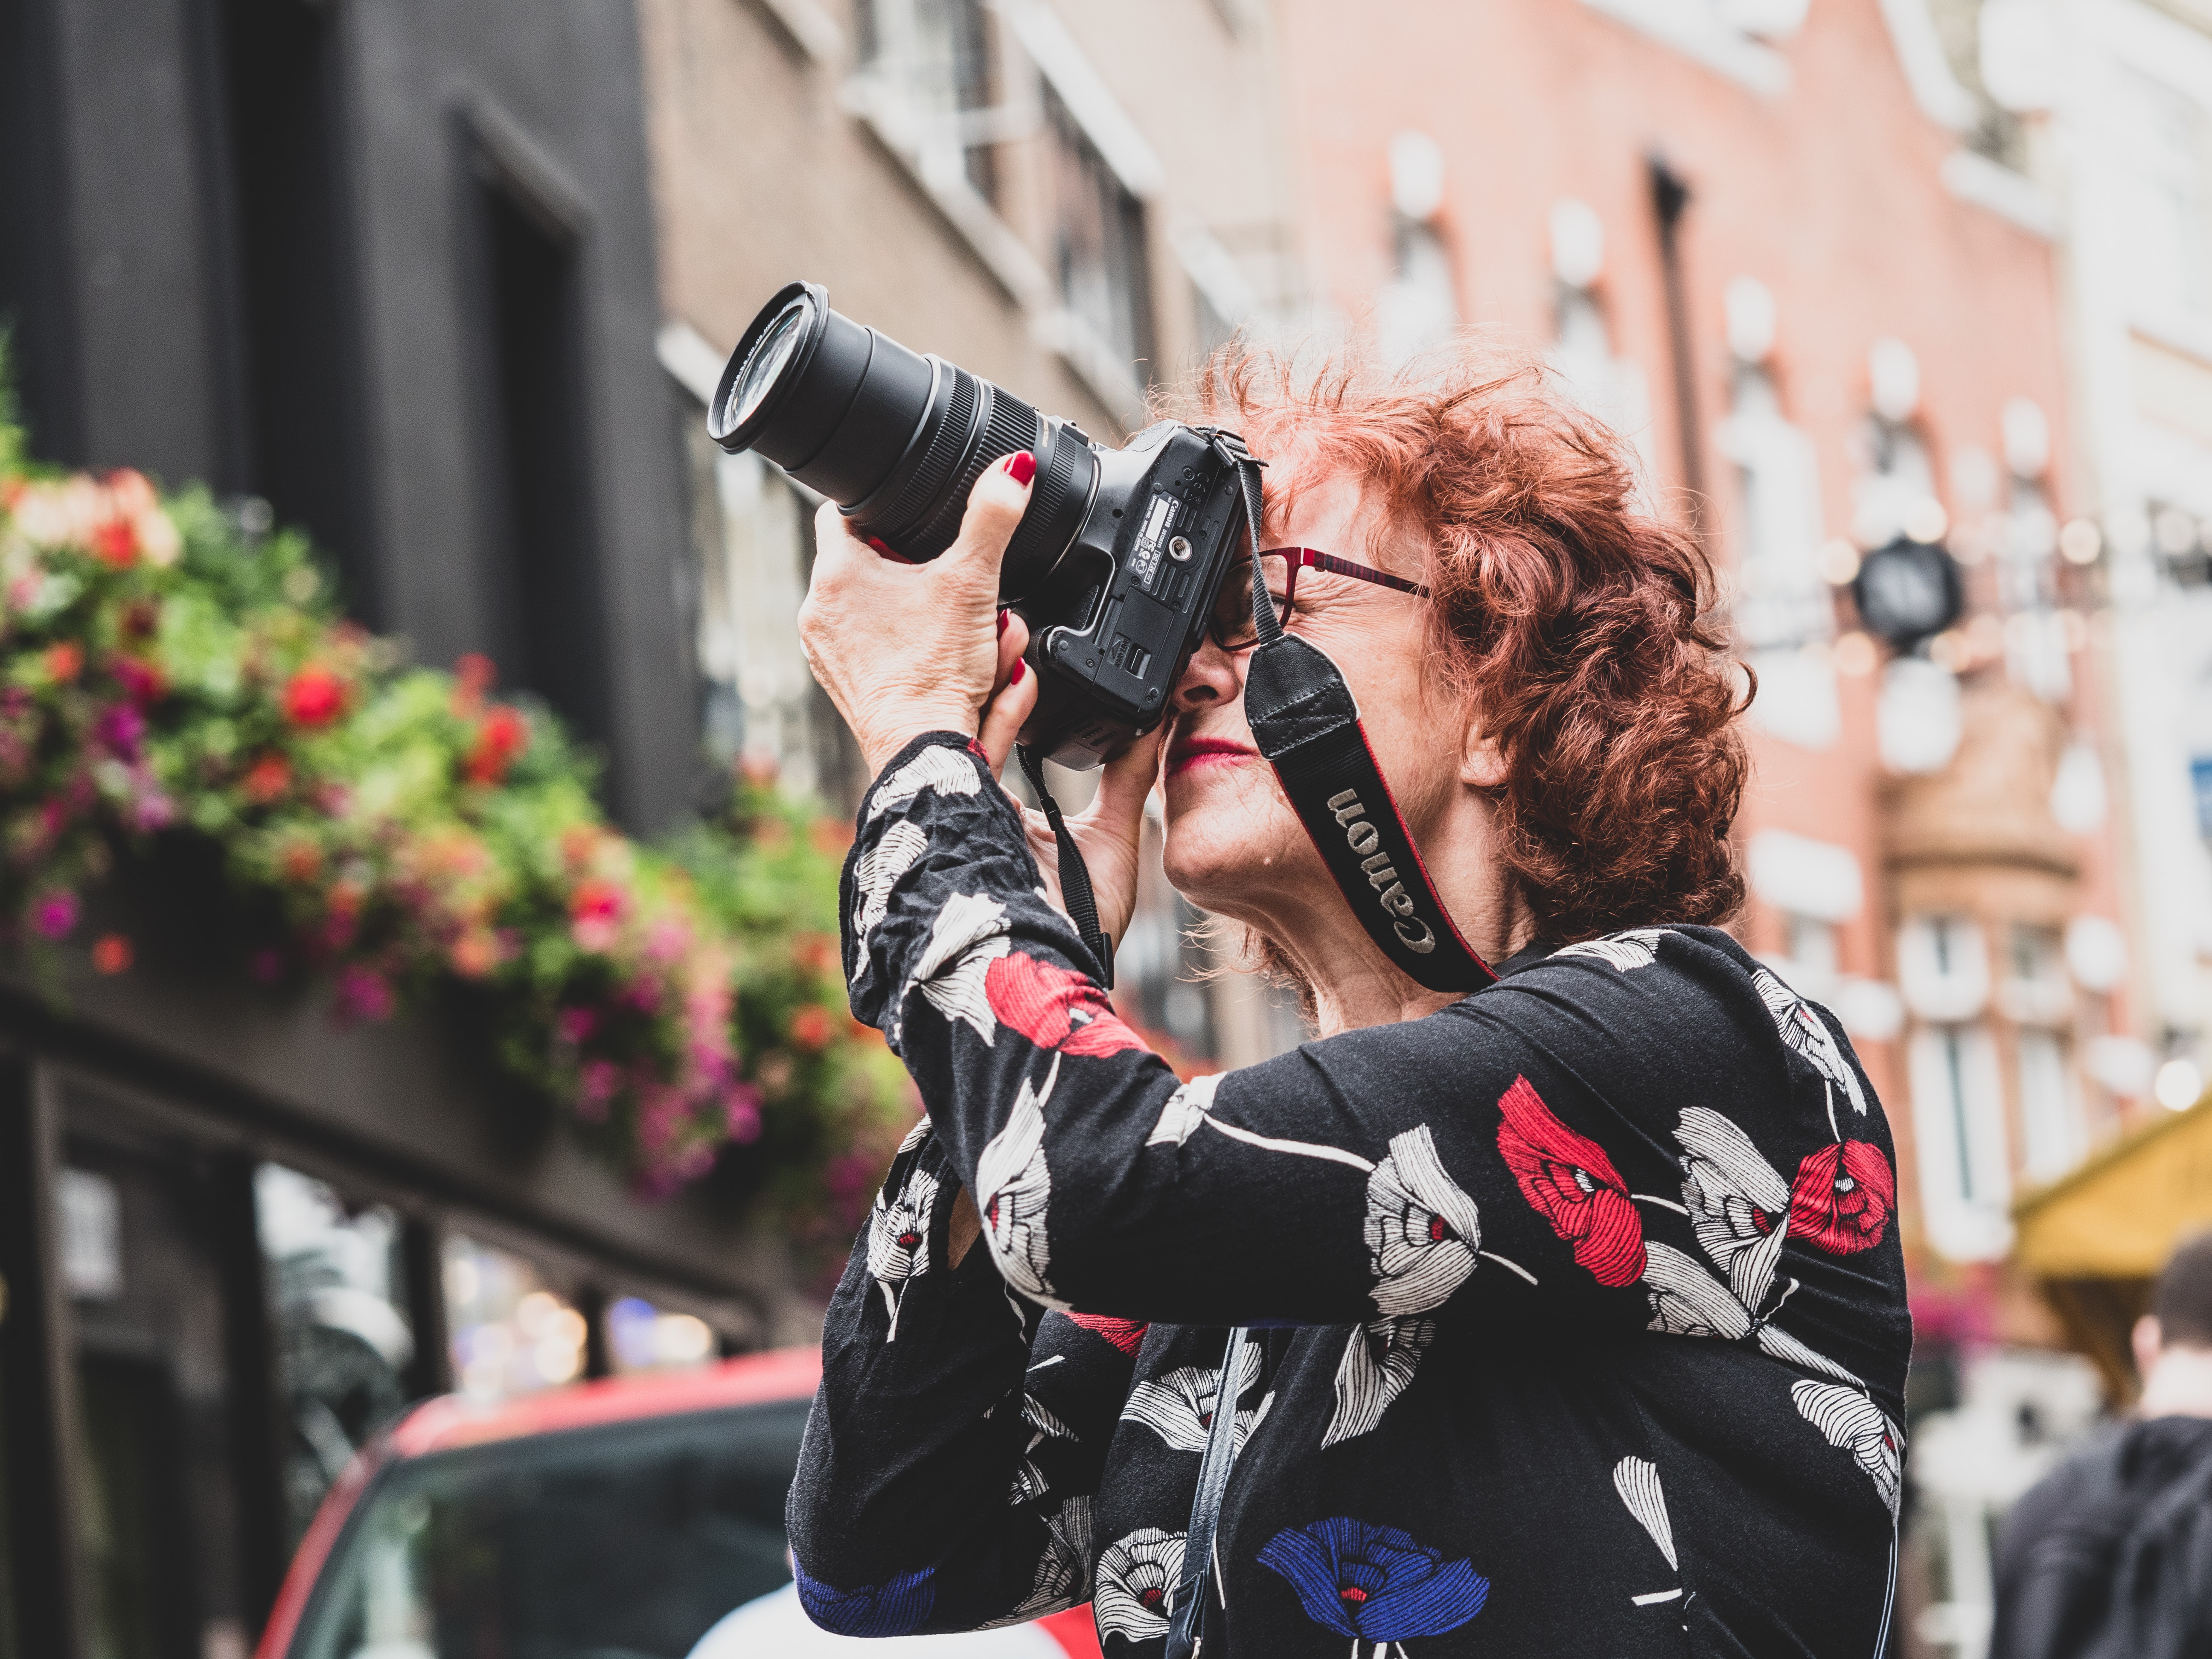 low angle photography of woman holding Canon DSLR camera looking upward